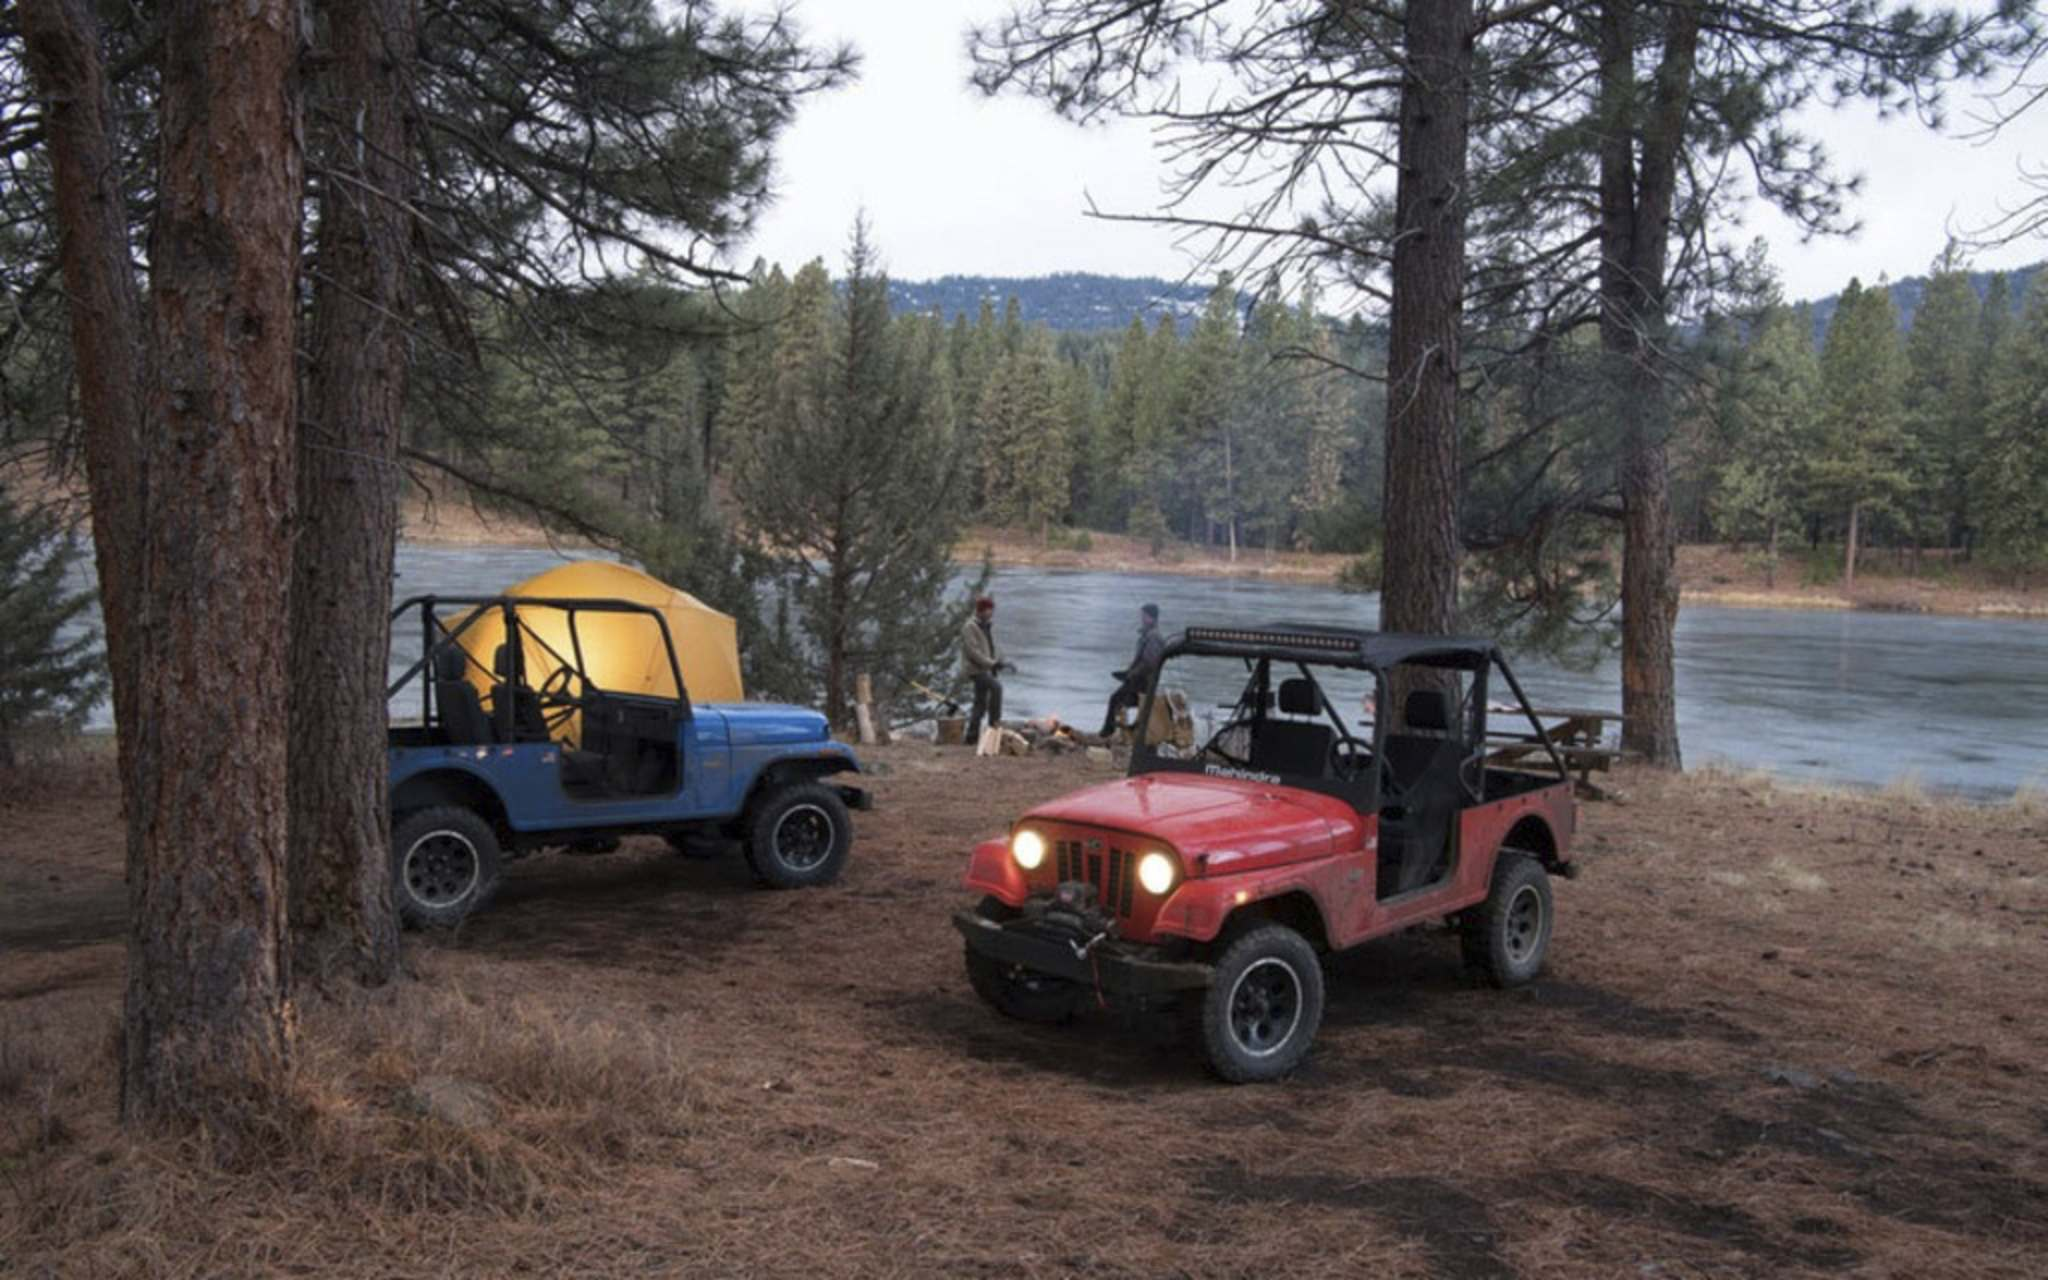 SUPPLIEDThe Mahindra Roxor is a Jeep look-alike ATV, comparable to a side-by-side.